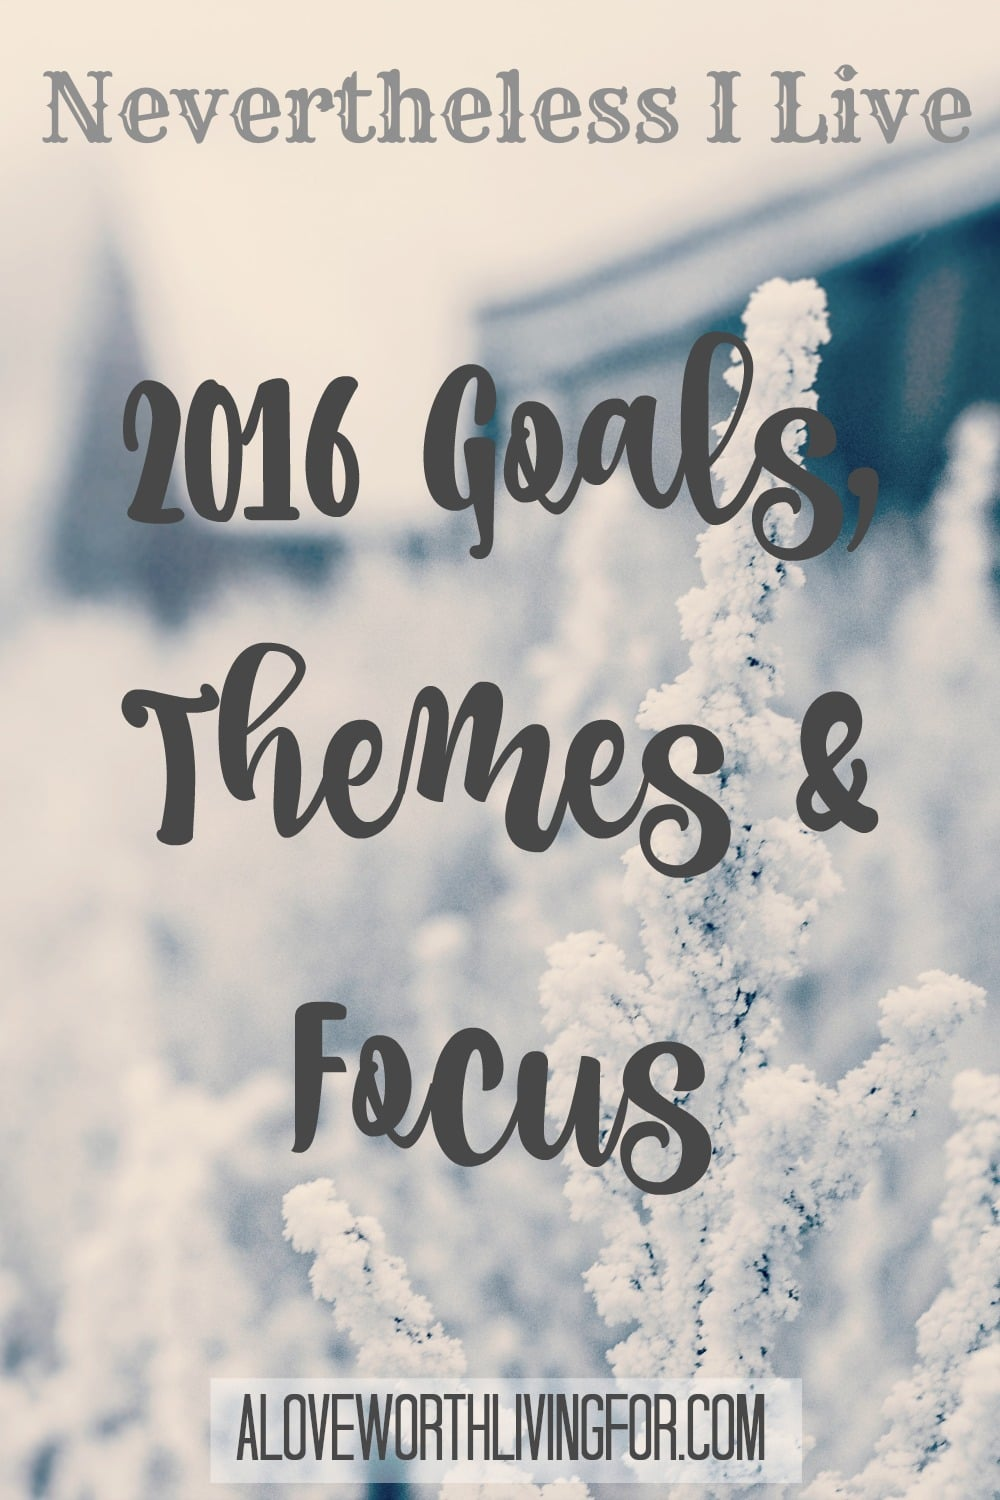 January is a time for new beginning and self reflection. Here are our goals, themes and focuses for 2016!